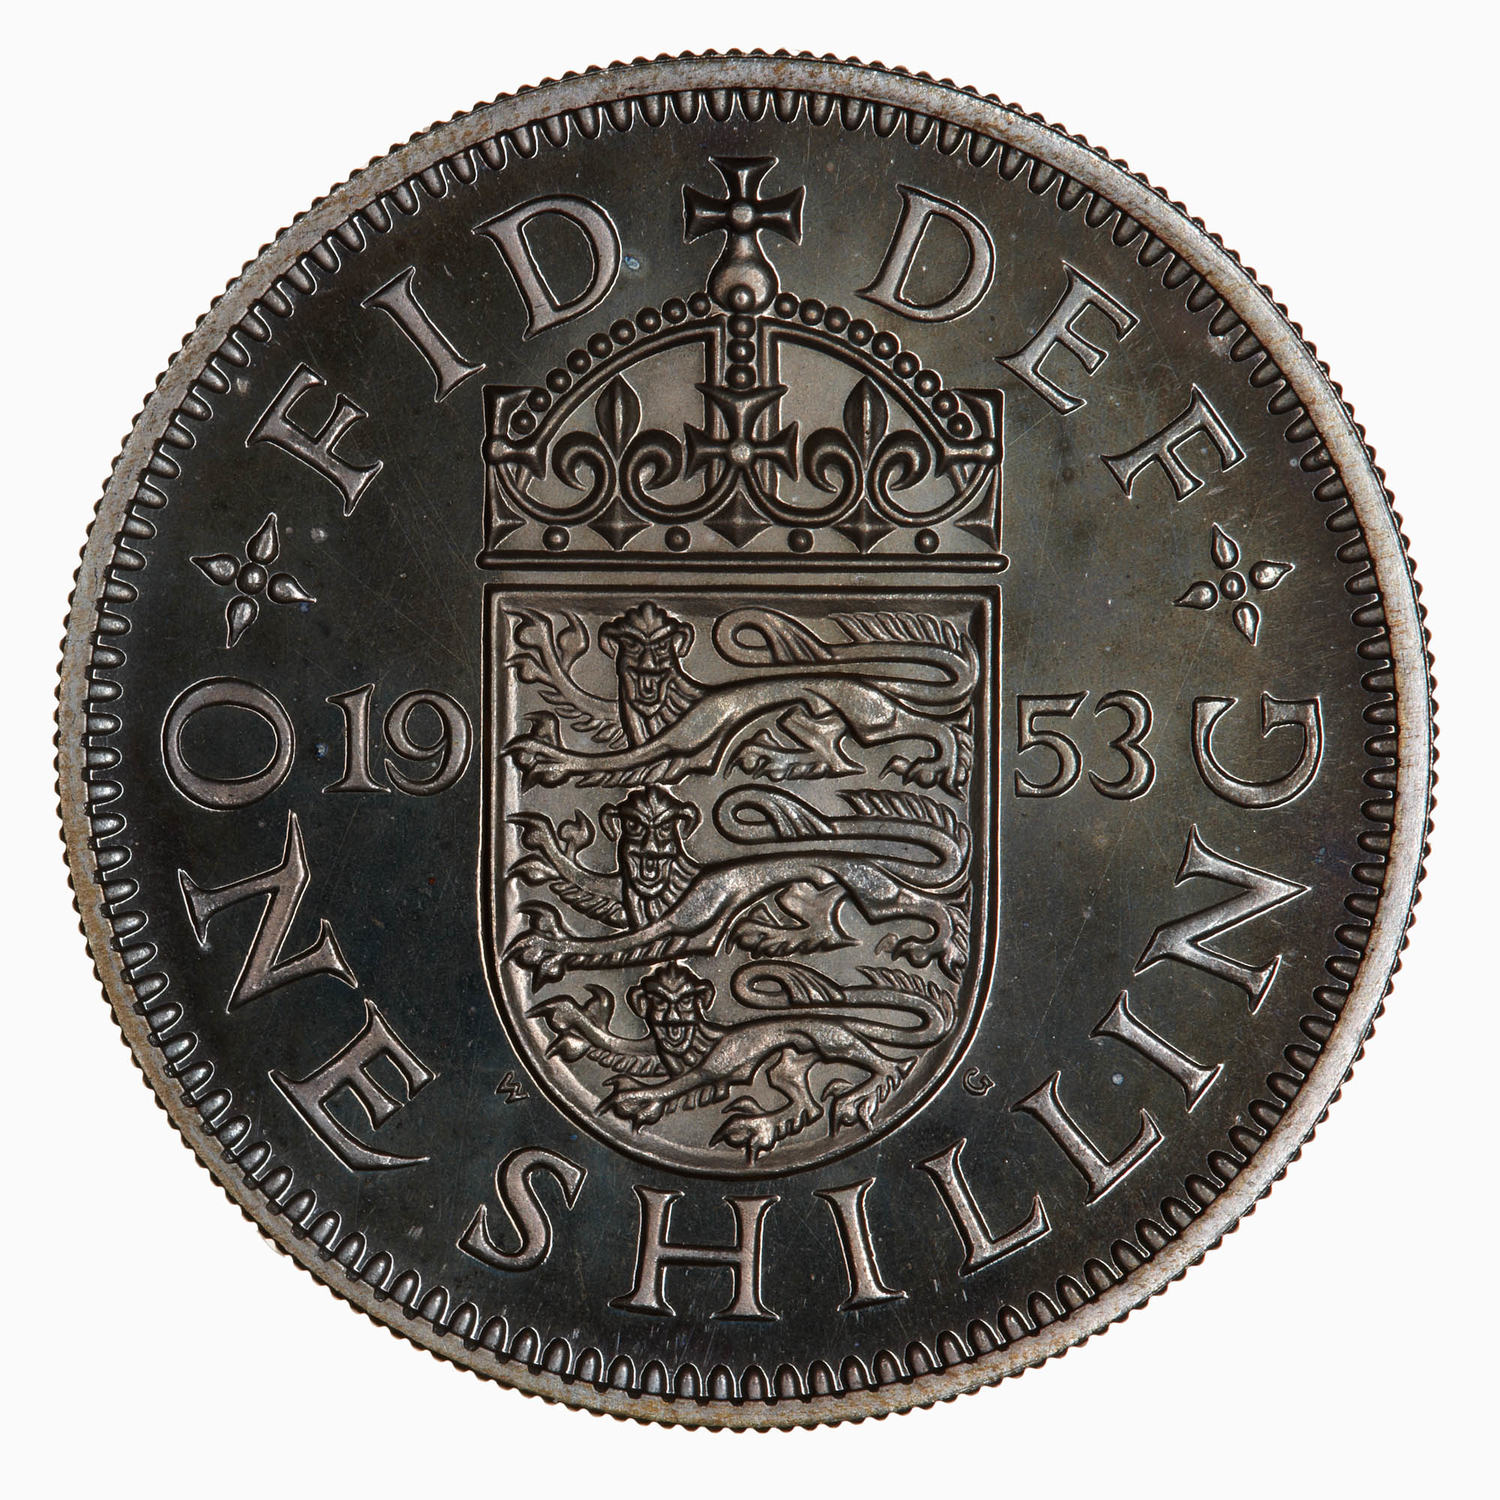 Shilling: Photo Proof Coin - Shilling, Elizabeth II, Great Britain, 1953